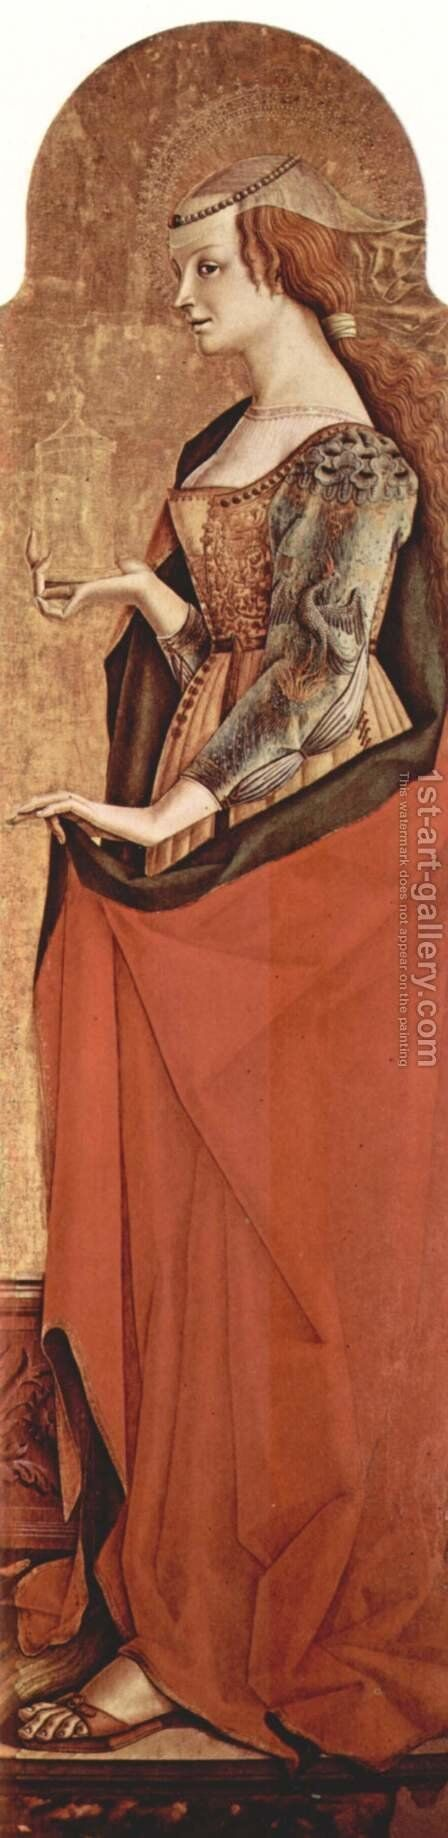 Saint Mary Magdalene by Carlo Crivelli - Reproduction Oil Painting